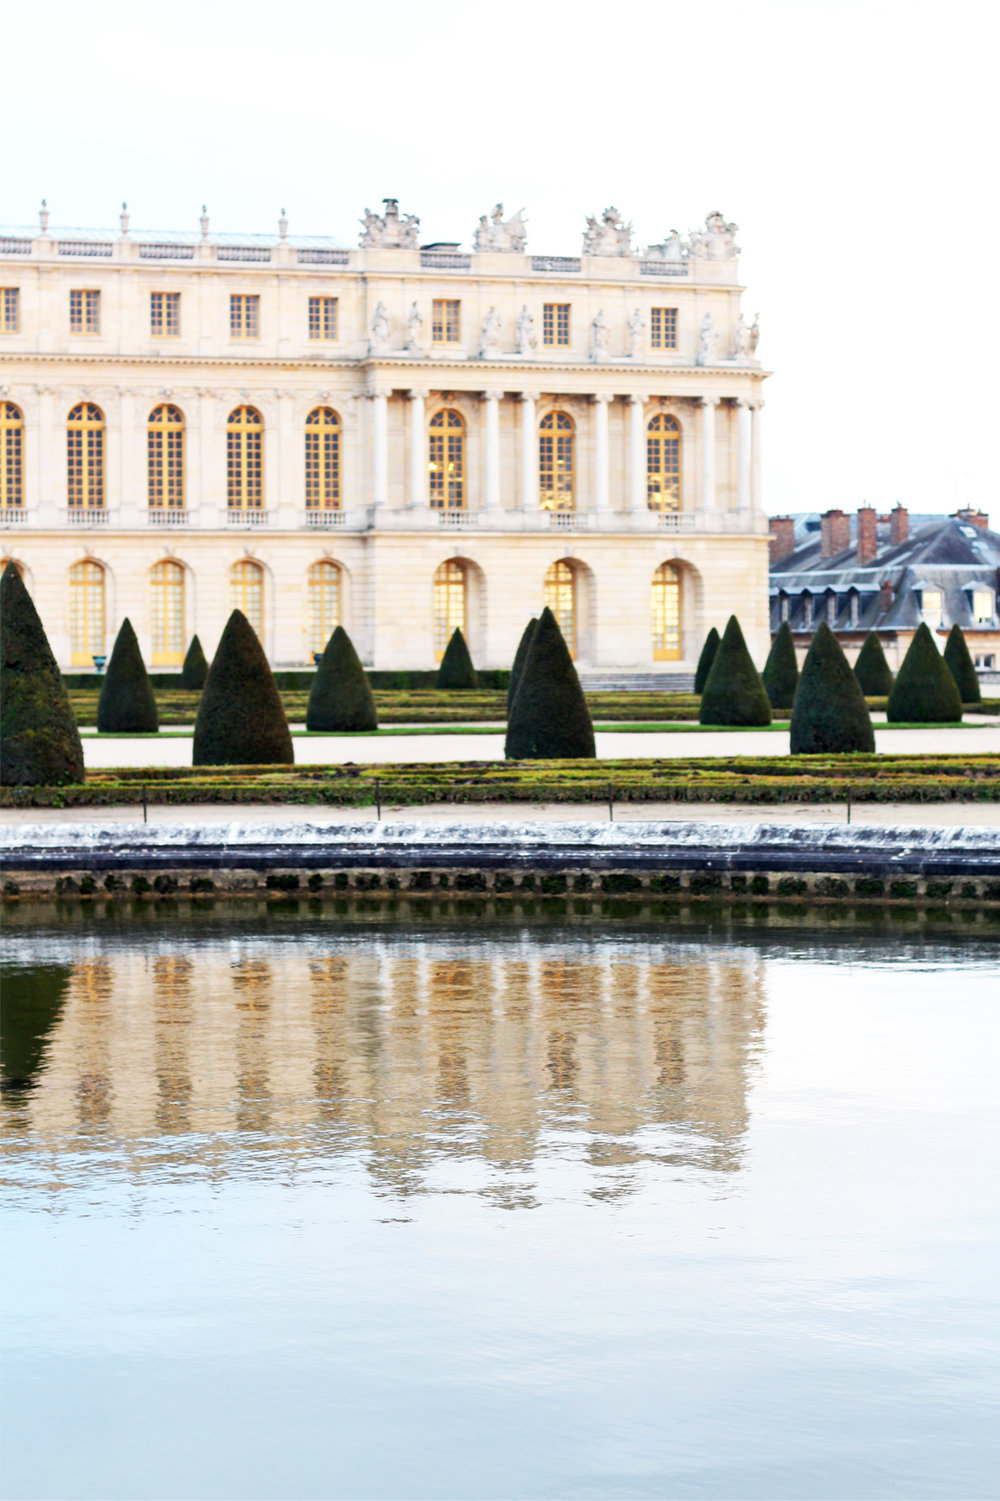 Palace of Versaille